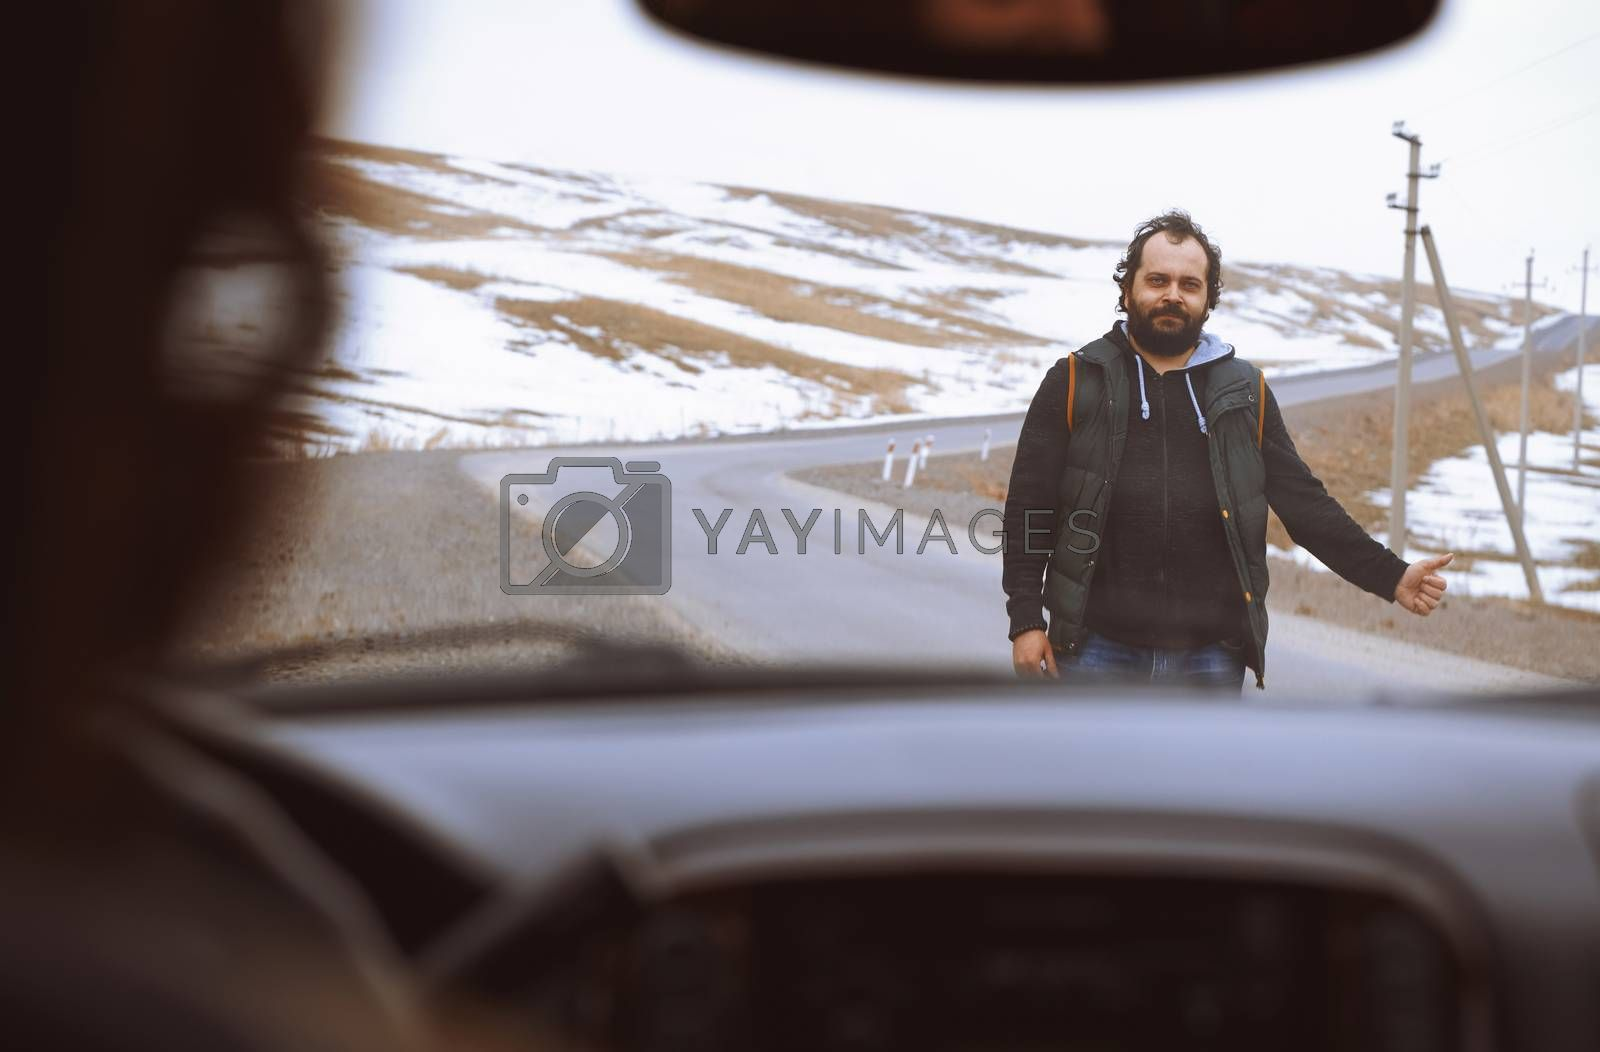 Traveller on the rural road trying to stop a car for assistance by Novic